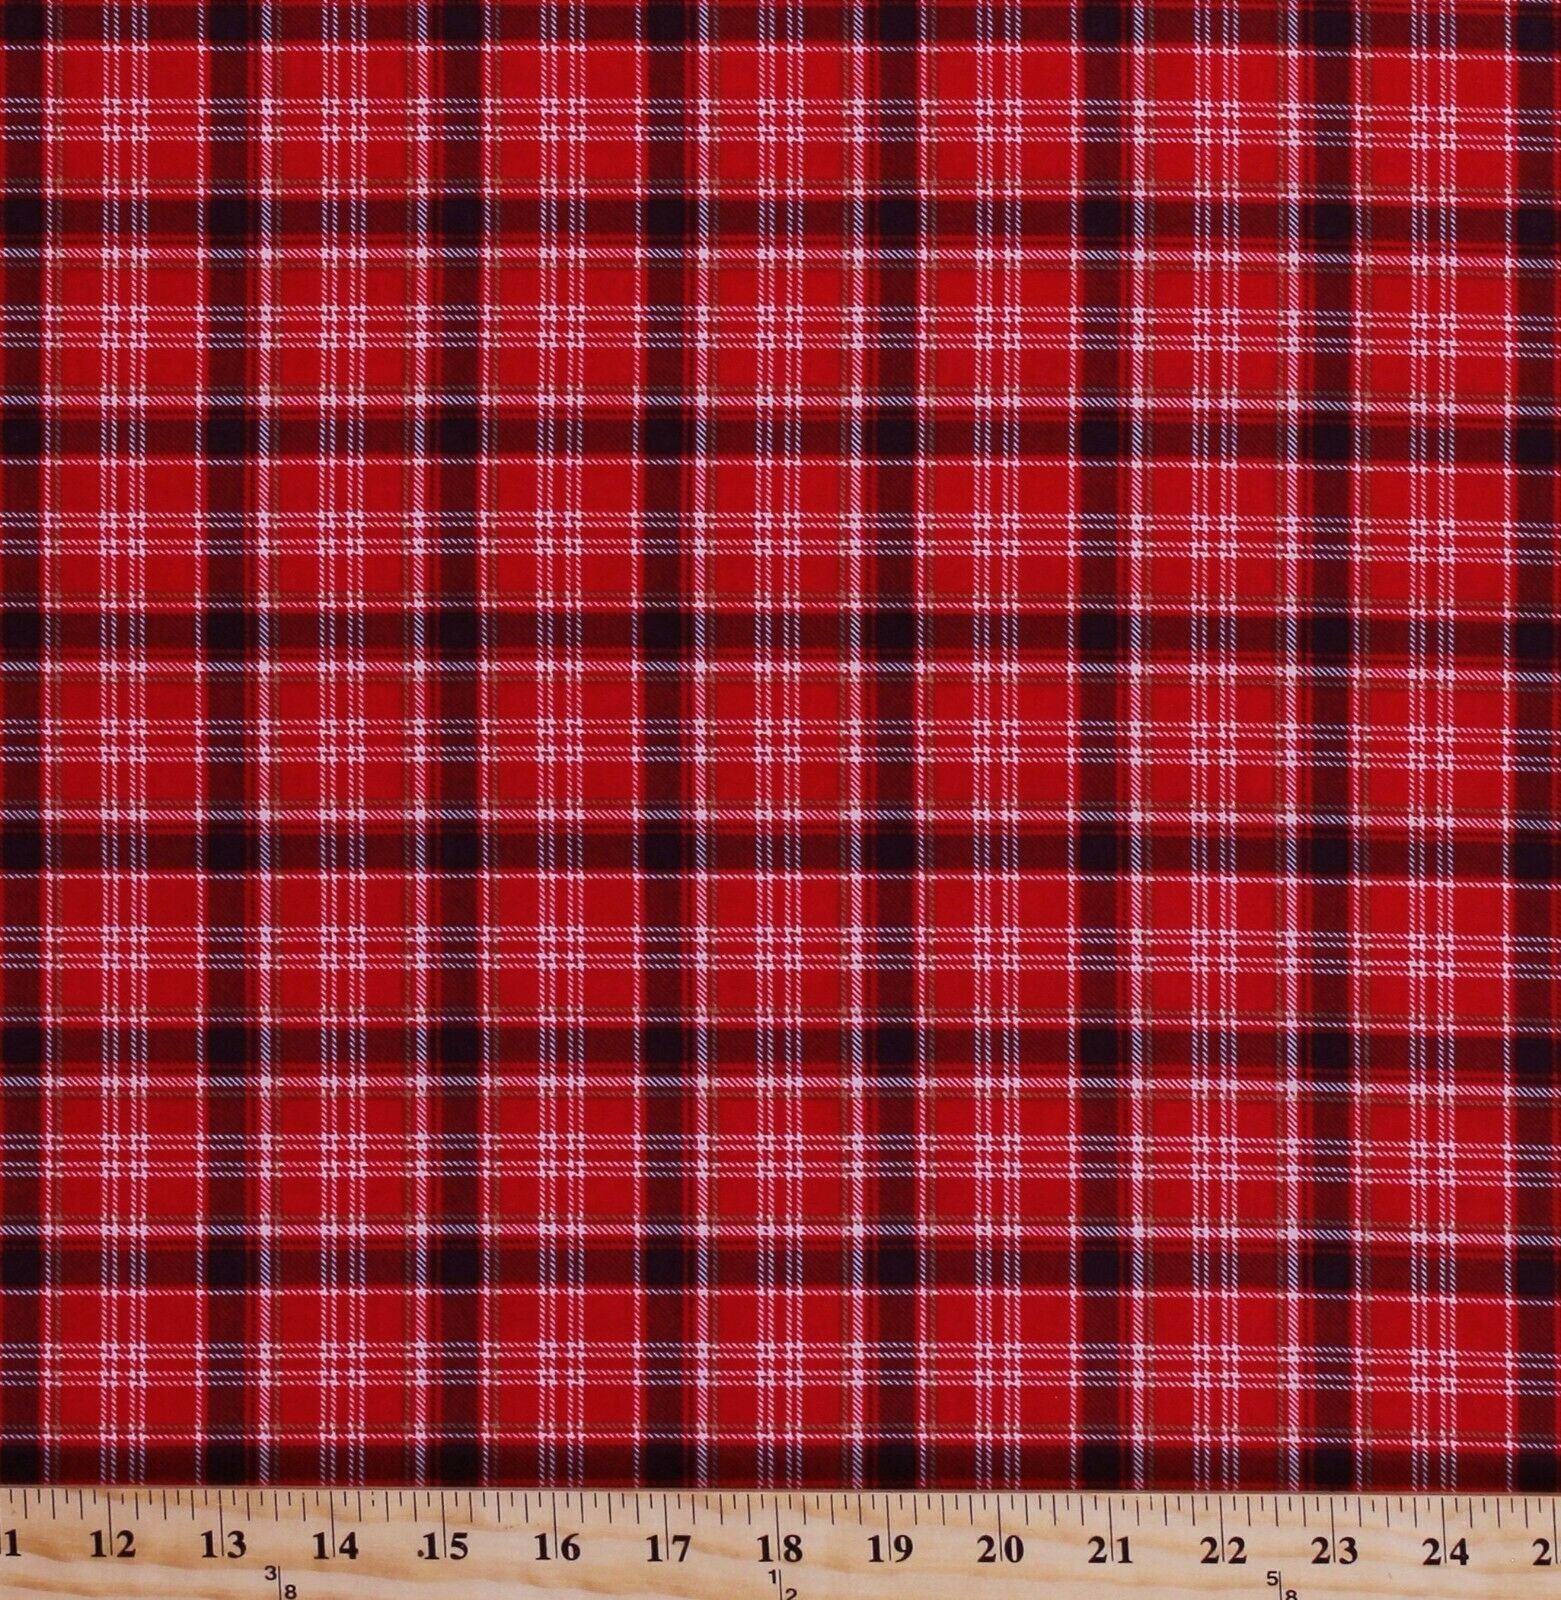 Primary image for Cotton Plaid Red Black Checkered Checks Northwoods Fabric Print by Yard D362.33